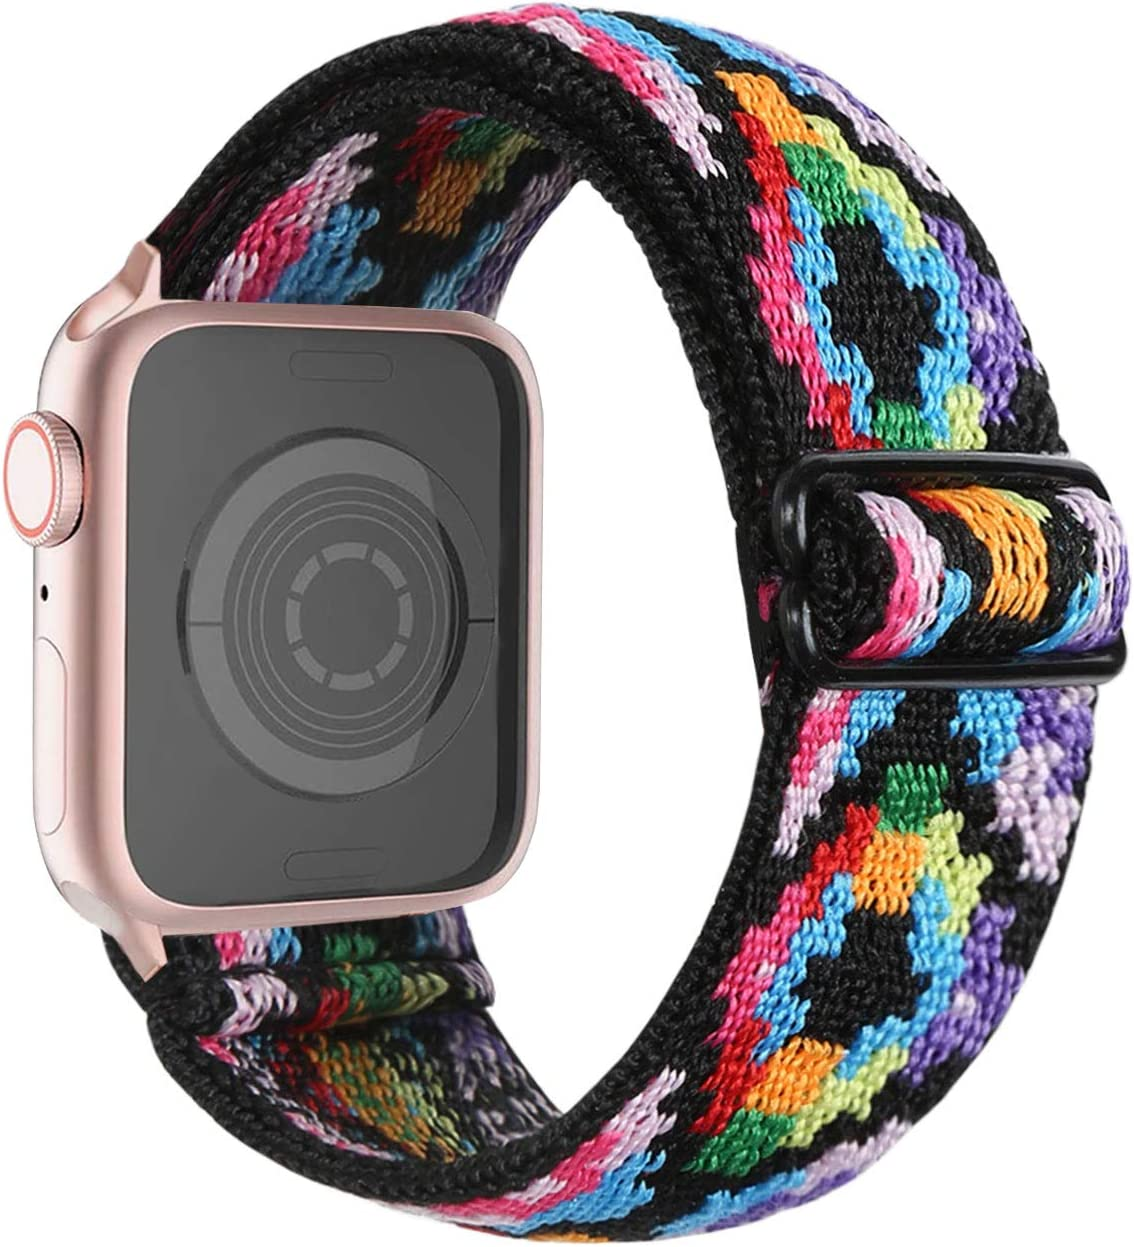 CRAZITAYA Adjustable Elastic Band Compatible for Apple Watch Band Accessories 38mm 40mm 42mm 44mm, Stretchy Sport Loop Strap Suitable for iWatch Series SE/6/5/4/3/2/1(Boho Multicolor, 38mm/40mm)